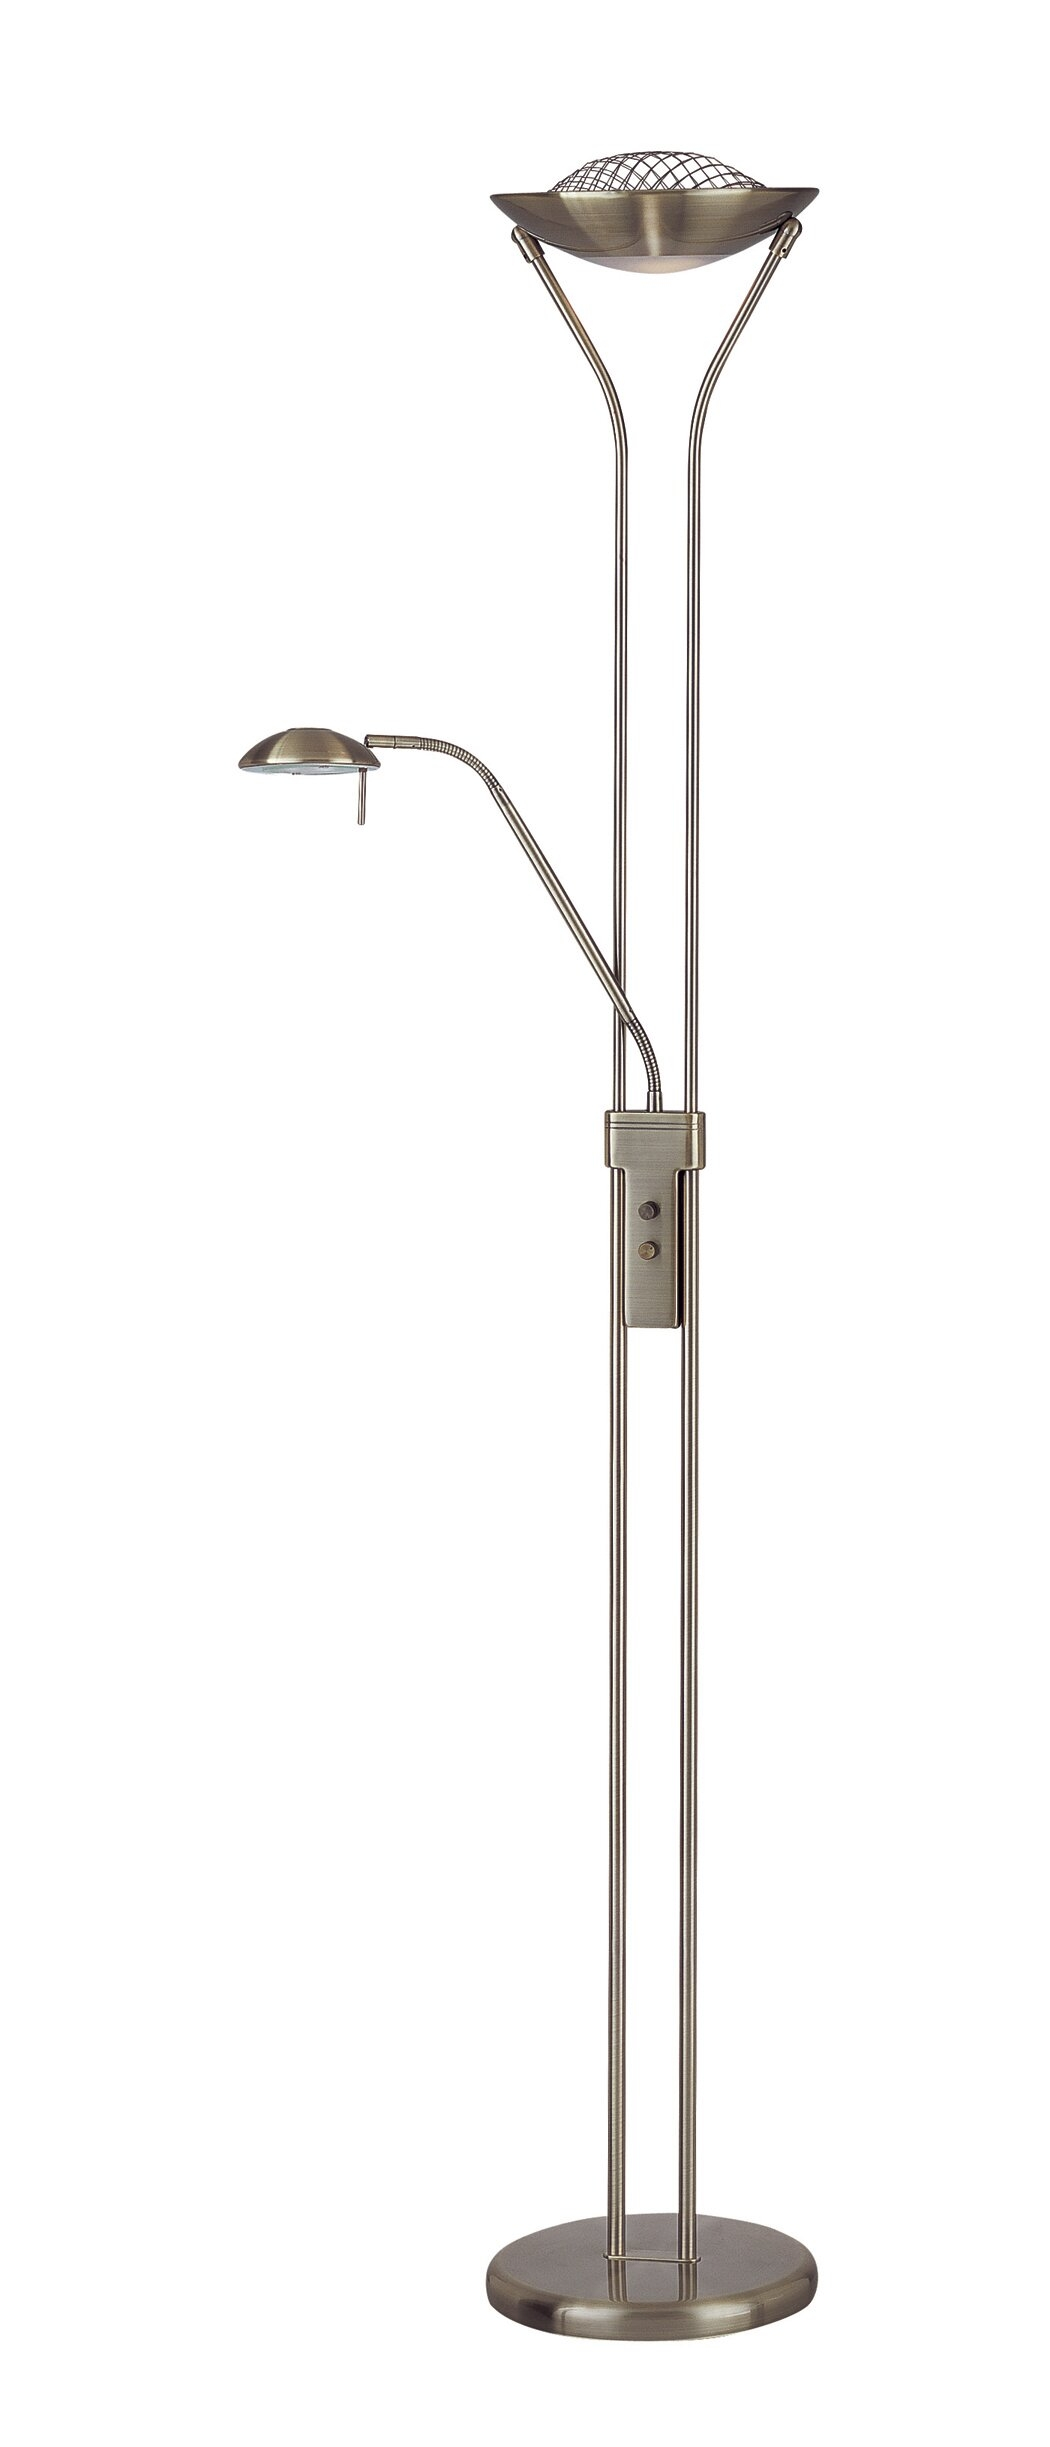 Torchiere Floor Lamp and Reading Light Combination